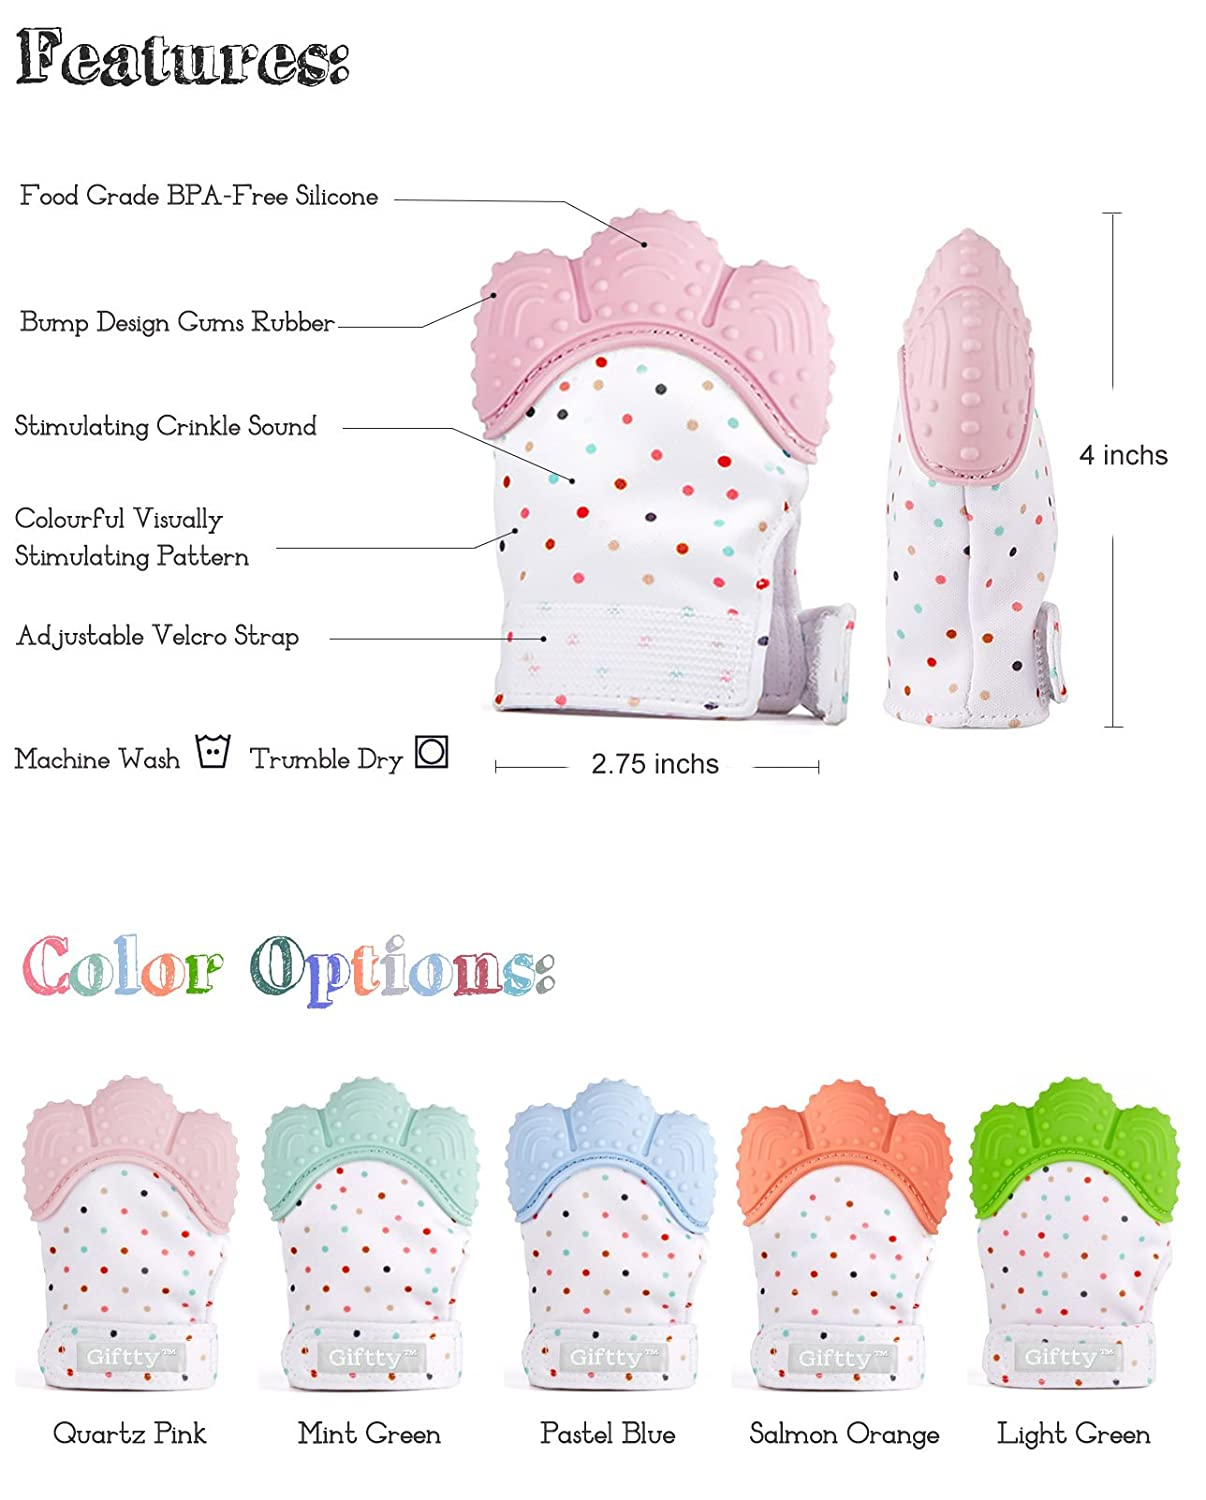 Giftty 2 Mittens, Mint+Pink Prevent Scratches Protection Glove with Travel Bag Stay on Baby??s Hand for 0-6 Months Baby Girls Baby Teething Mittens Self Soothing Pain Relief Mitt Stimulating Teether Toy